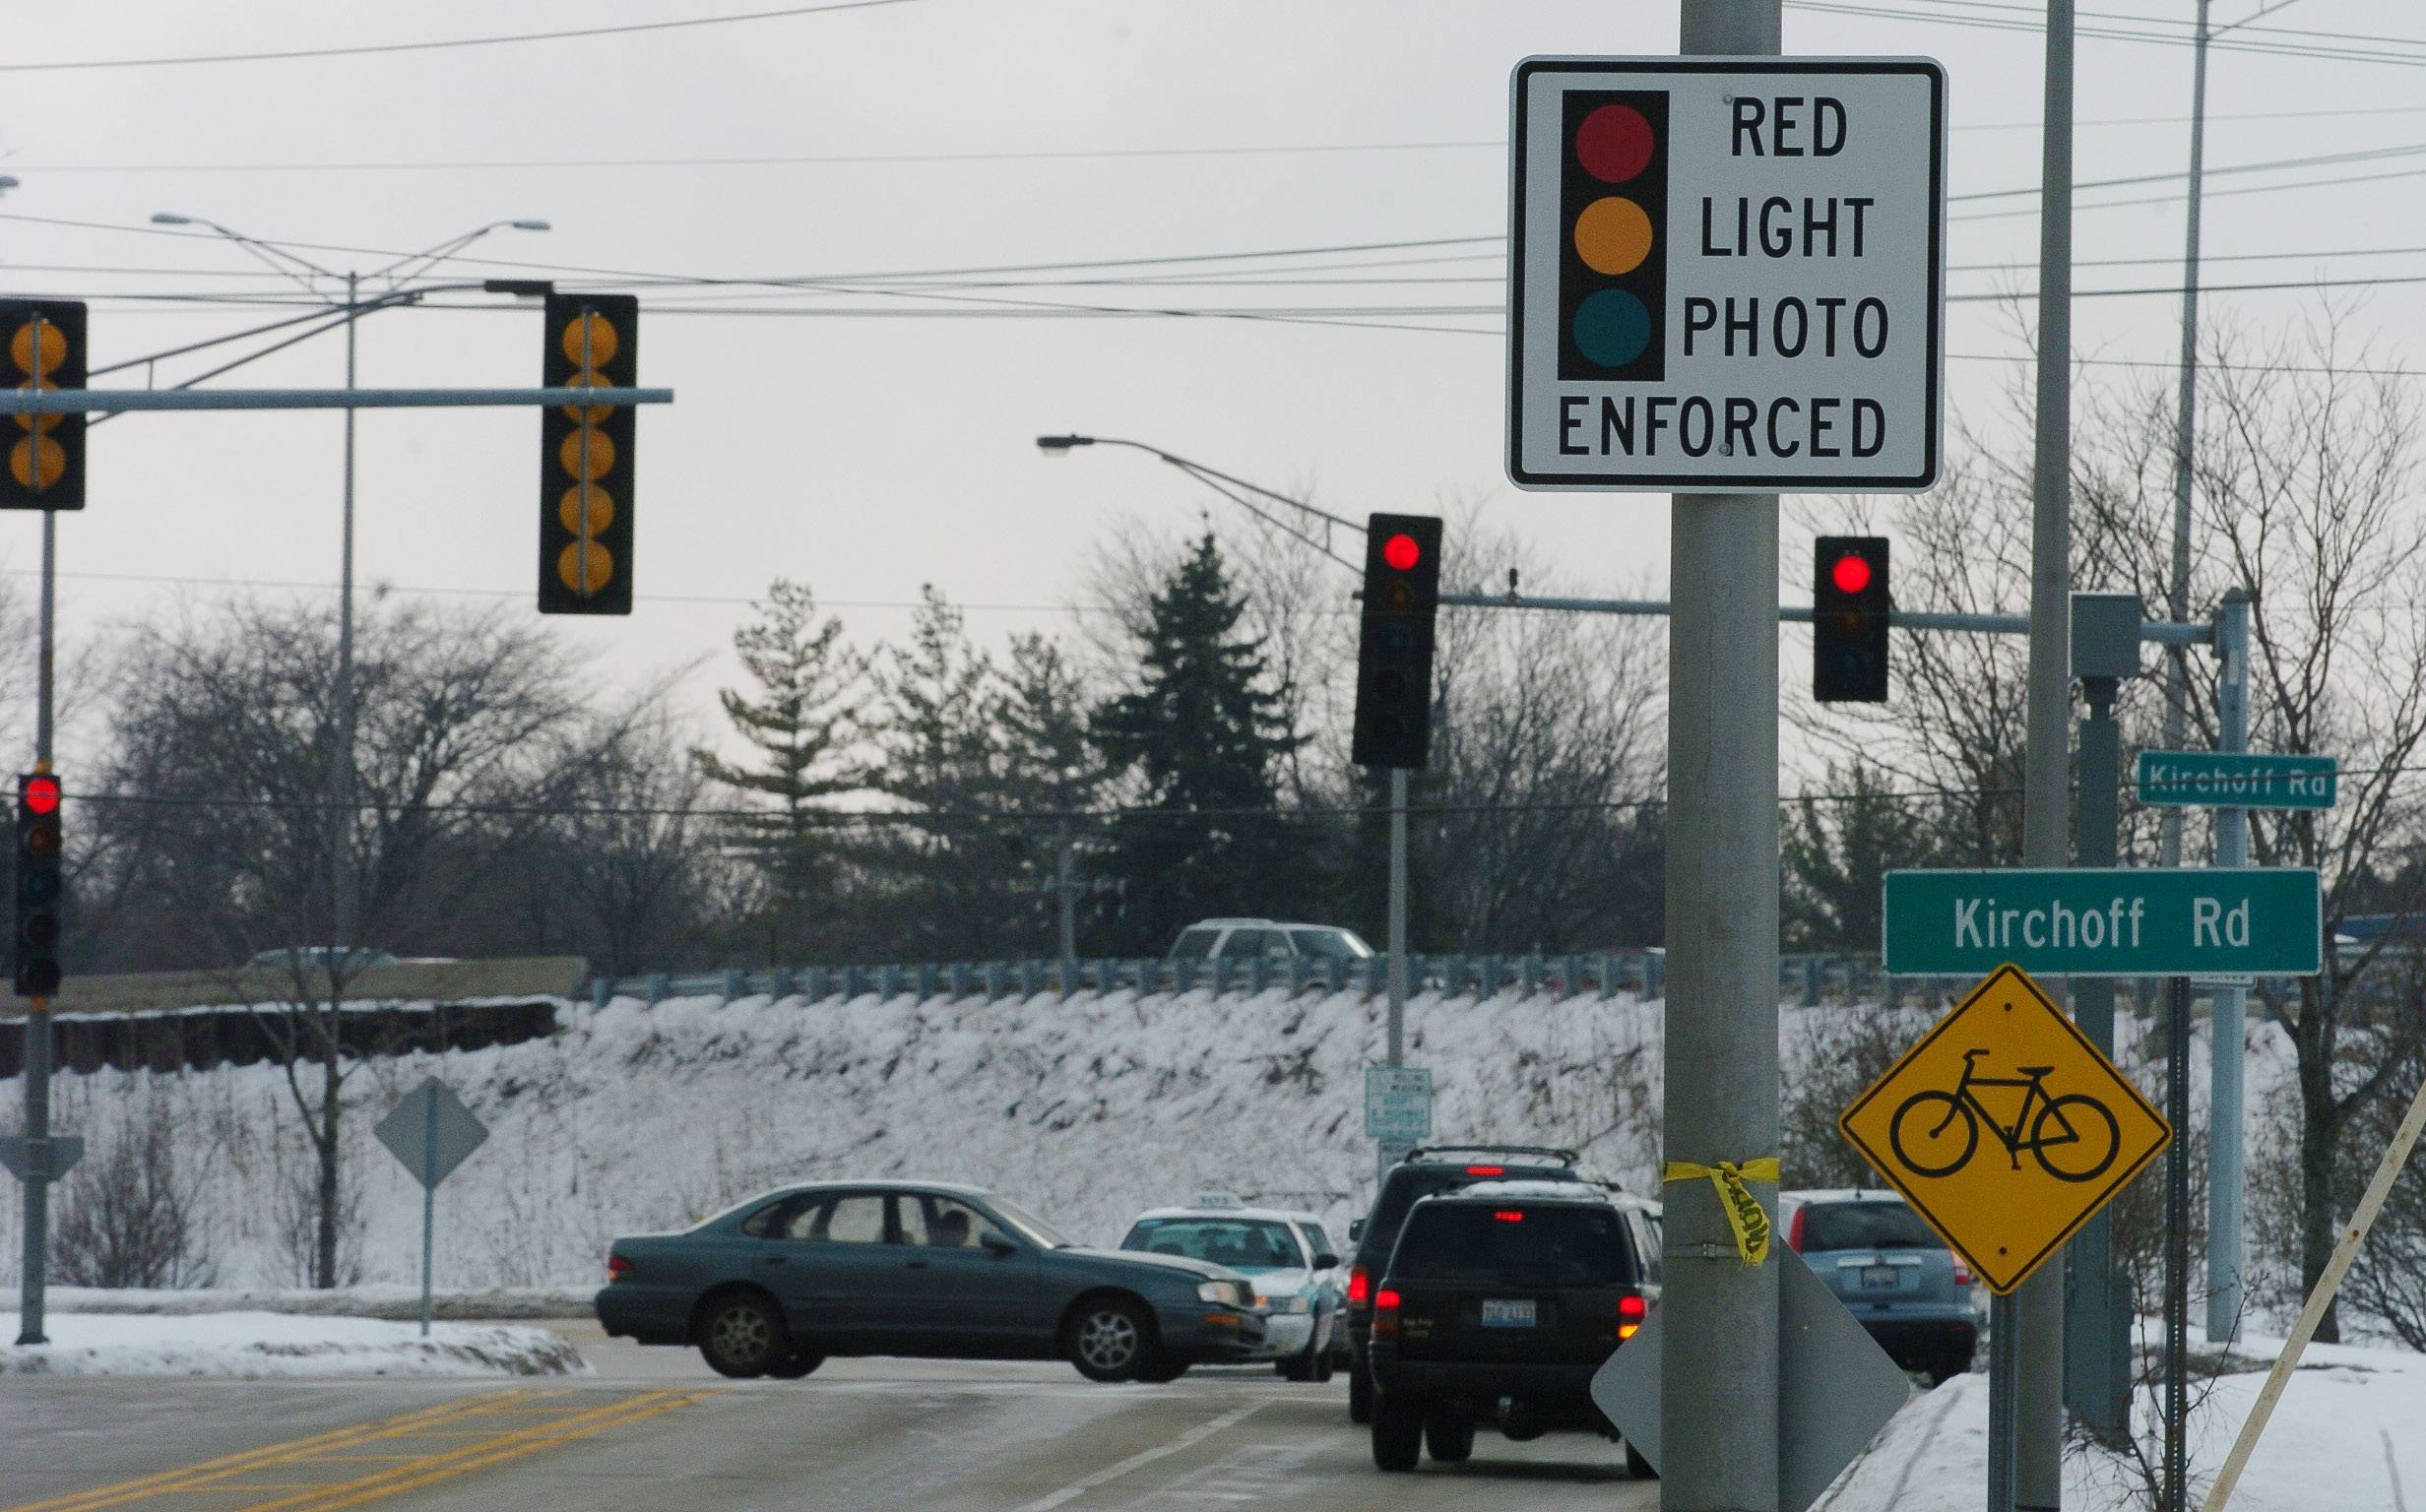 The Illinois Supreme Court will hear a case later this month that could lead to the end of red light cameras.